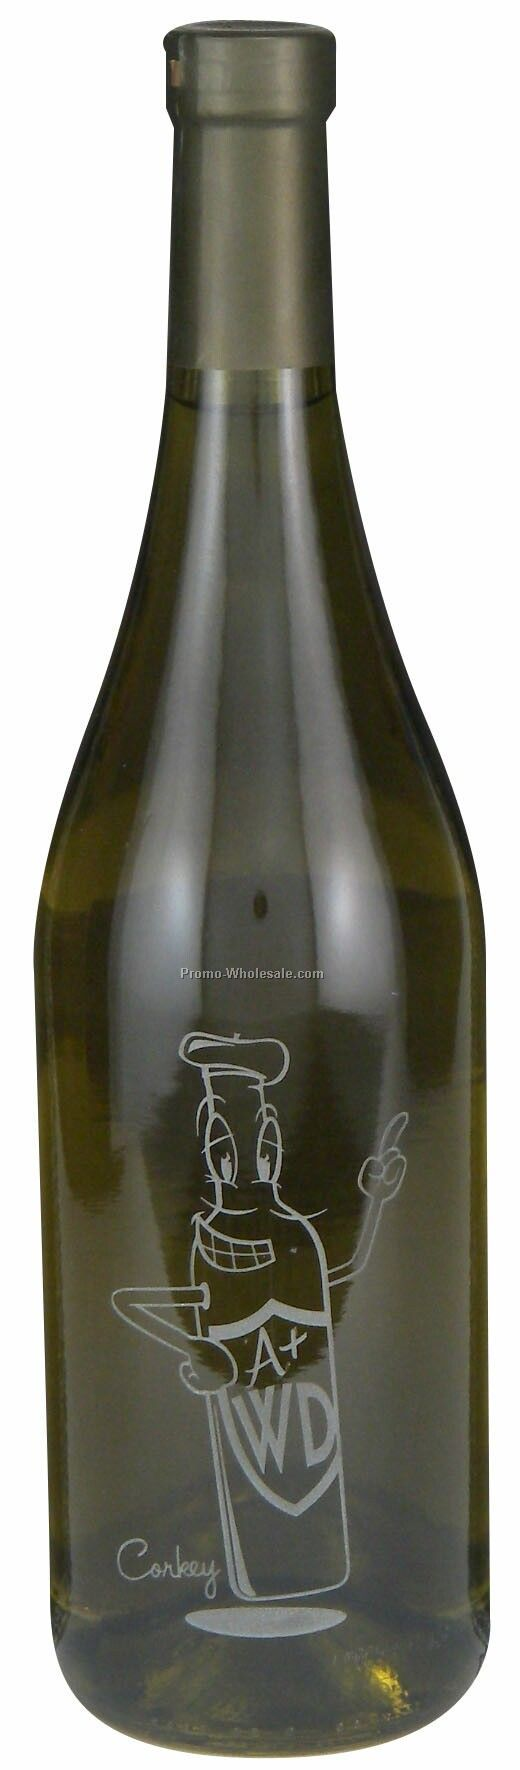 750 Ml Custom Etched Chardonnay Woodbridge, Ca, Just Etch